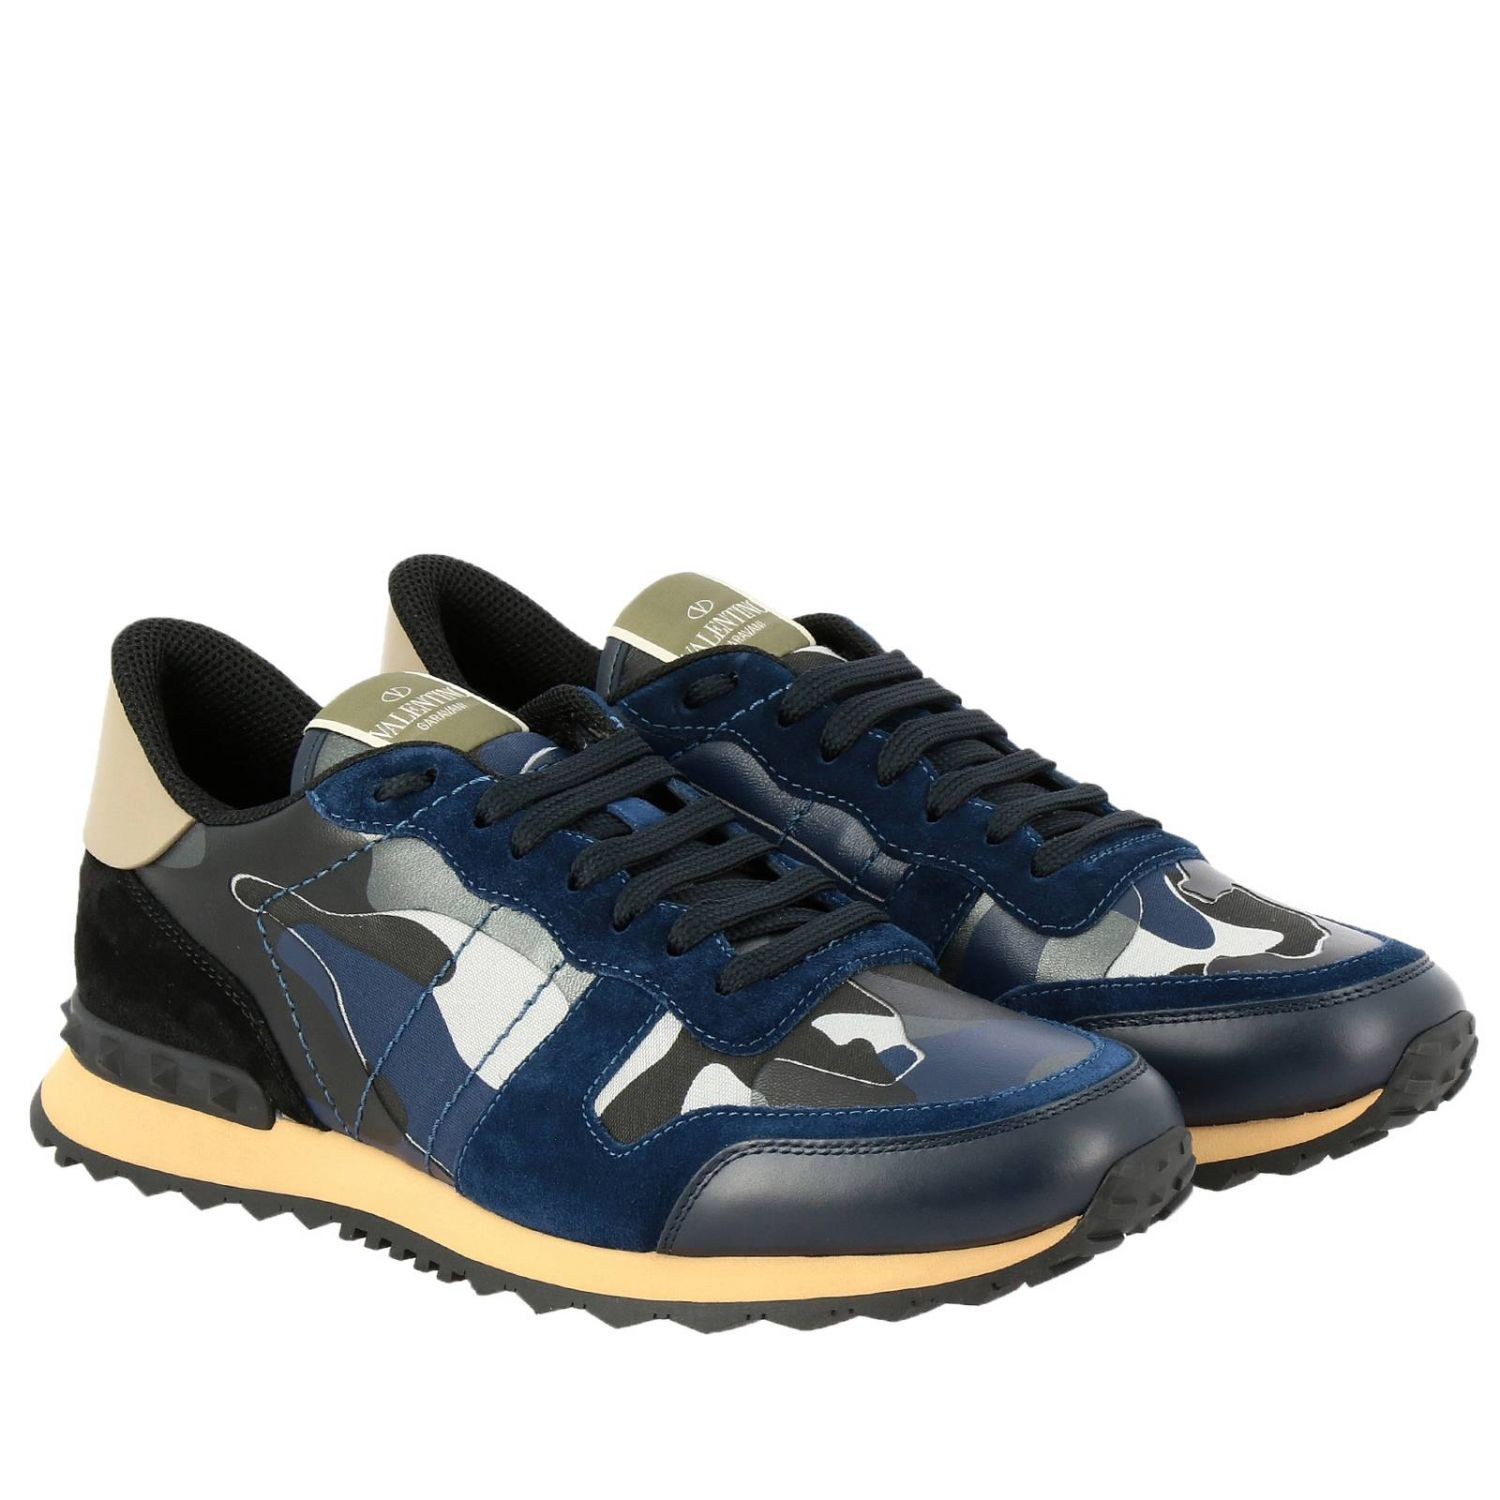 Valentino Garavani Rock runner camouflage suede and leather sneakers blue 2